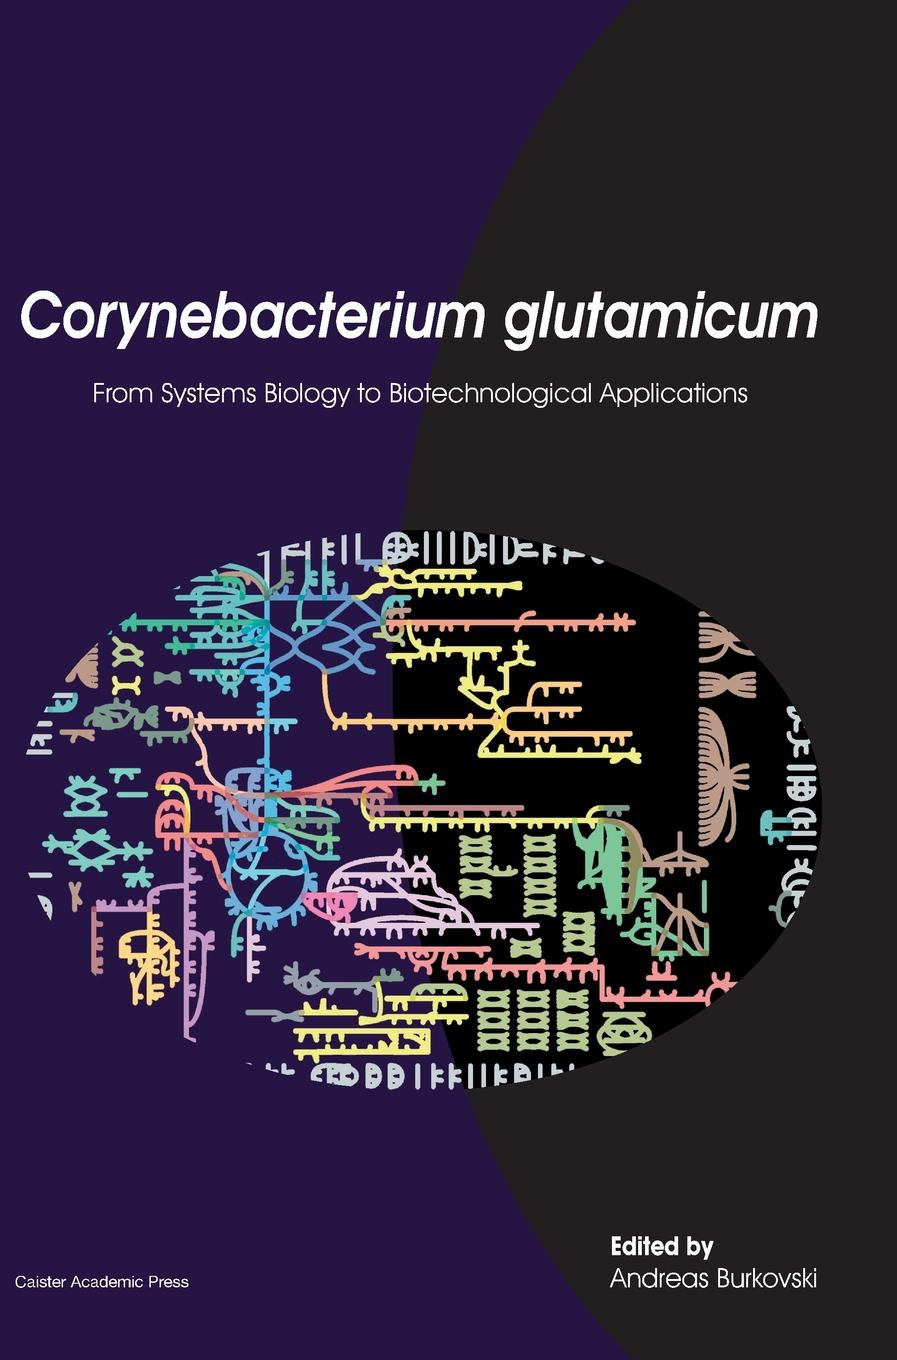 Corynebacterium glutamicum: From Systems Biology to Biotechnological Applications